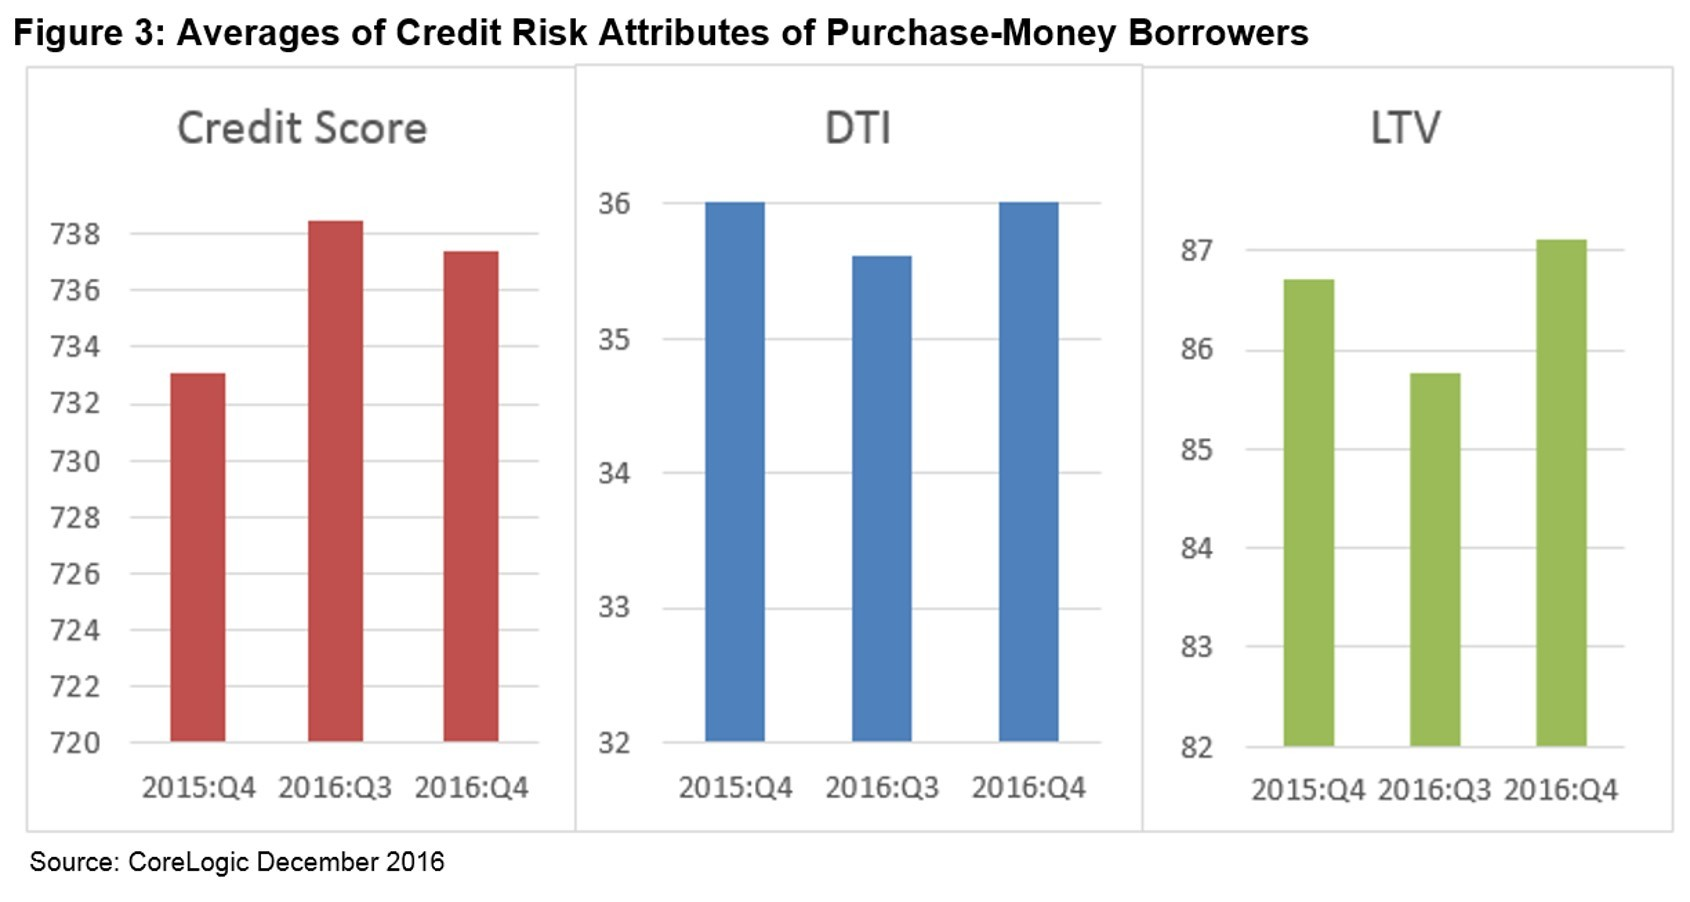 Figure 3: Averages of Credit Risk Attributes of Purchase-Money Borrowers Q4 2016 (Graphic: Business Wire)